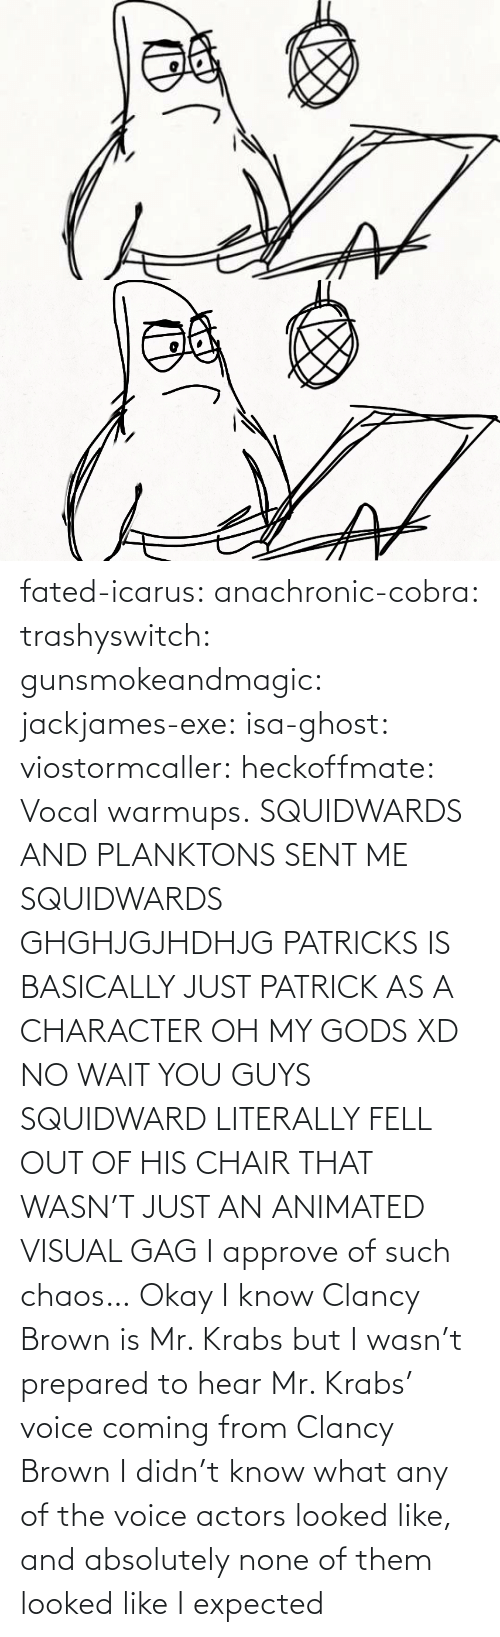 youtube.com: fated-icarus:  anachronic-cobra: trashyswitch:  gunsmokeandmagic:  jackjames-exe:  isa-ghost:   viostormcaller:  heckoffmate: Vocal warmups. SQUIDWARDS AND PLANKTONS SENT ME  SQUIDWARDS GHGHJGJHDHJG   PATRICKS IS BASICALLY JUST PATRICK AS A CHARACTER OH MY GODS XD   NO WAIT YOU GUYS SQUIDWARD LITERALLY FELL OUT OF HIS CHAIR THAT WASN'T JUST AN ANIMATED VISUAL GAG    I approve of such chaos…    Okay I know Clancy Brown is Mr. Krabs but I wasn't prepared to hear Mr. Krabs' voice coming from Clancy Brown    I didn't know what any of the voice actors looked like, and absolutely none of them looked like I expected